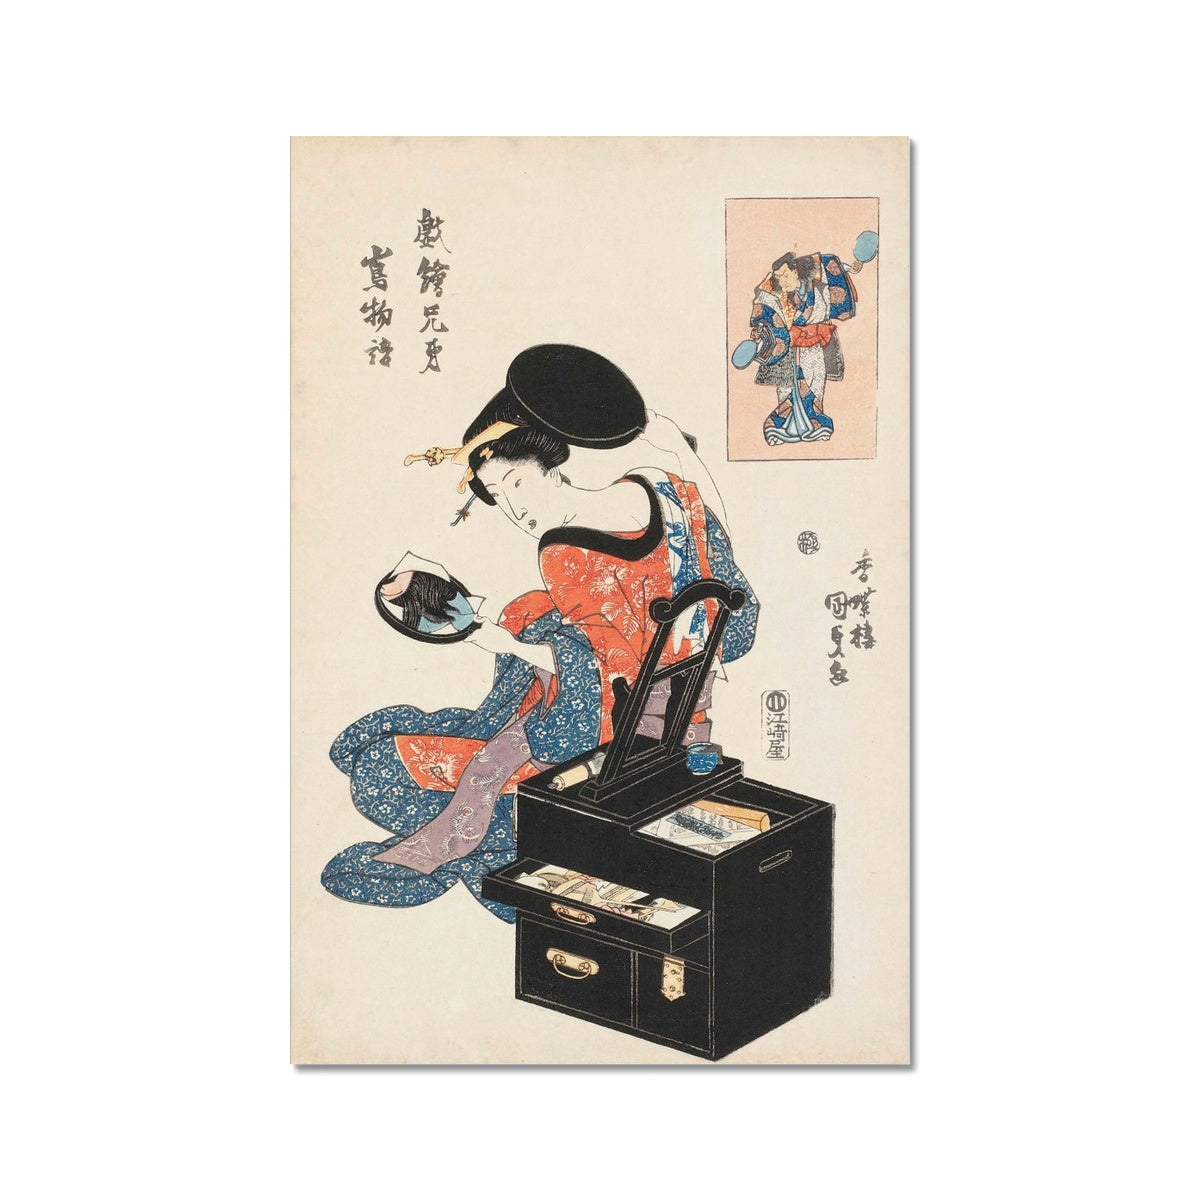 Takashima Ohisa Using Two Mirrors to Observe Her Coiffure (1795) - Fine Art Print